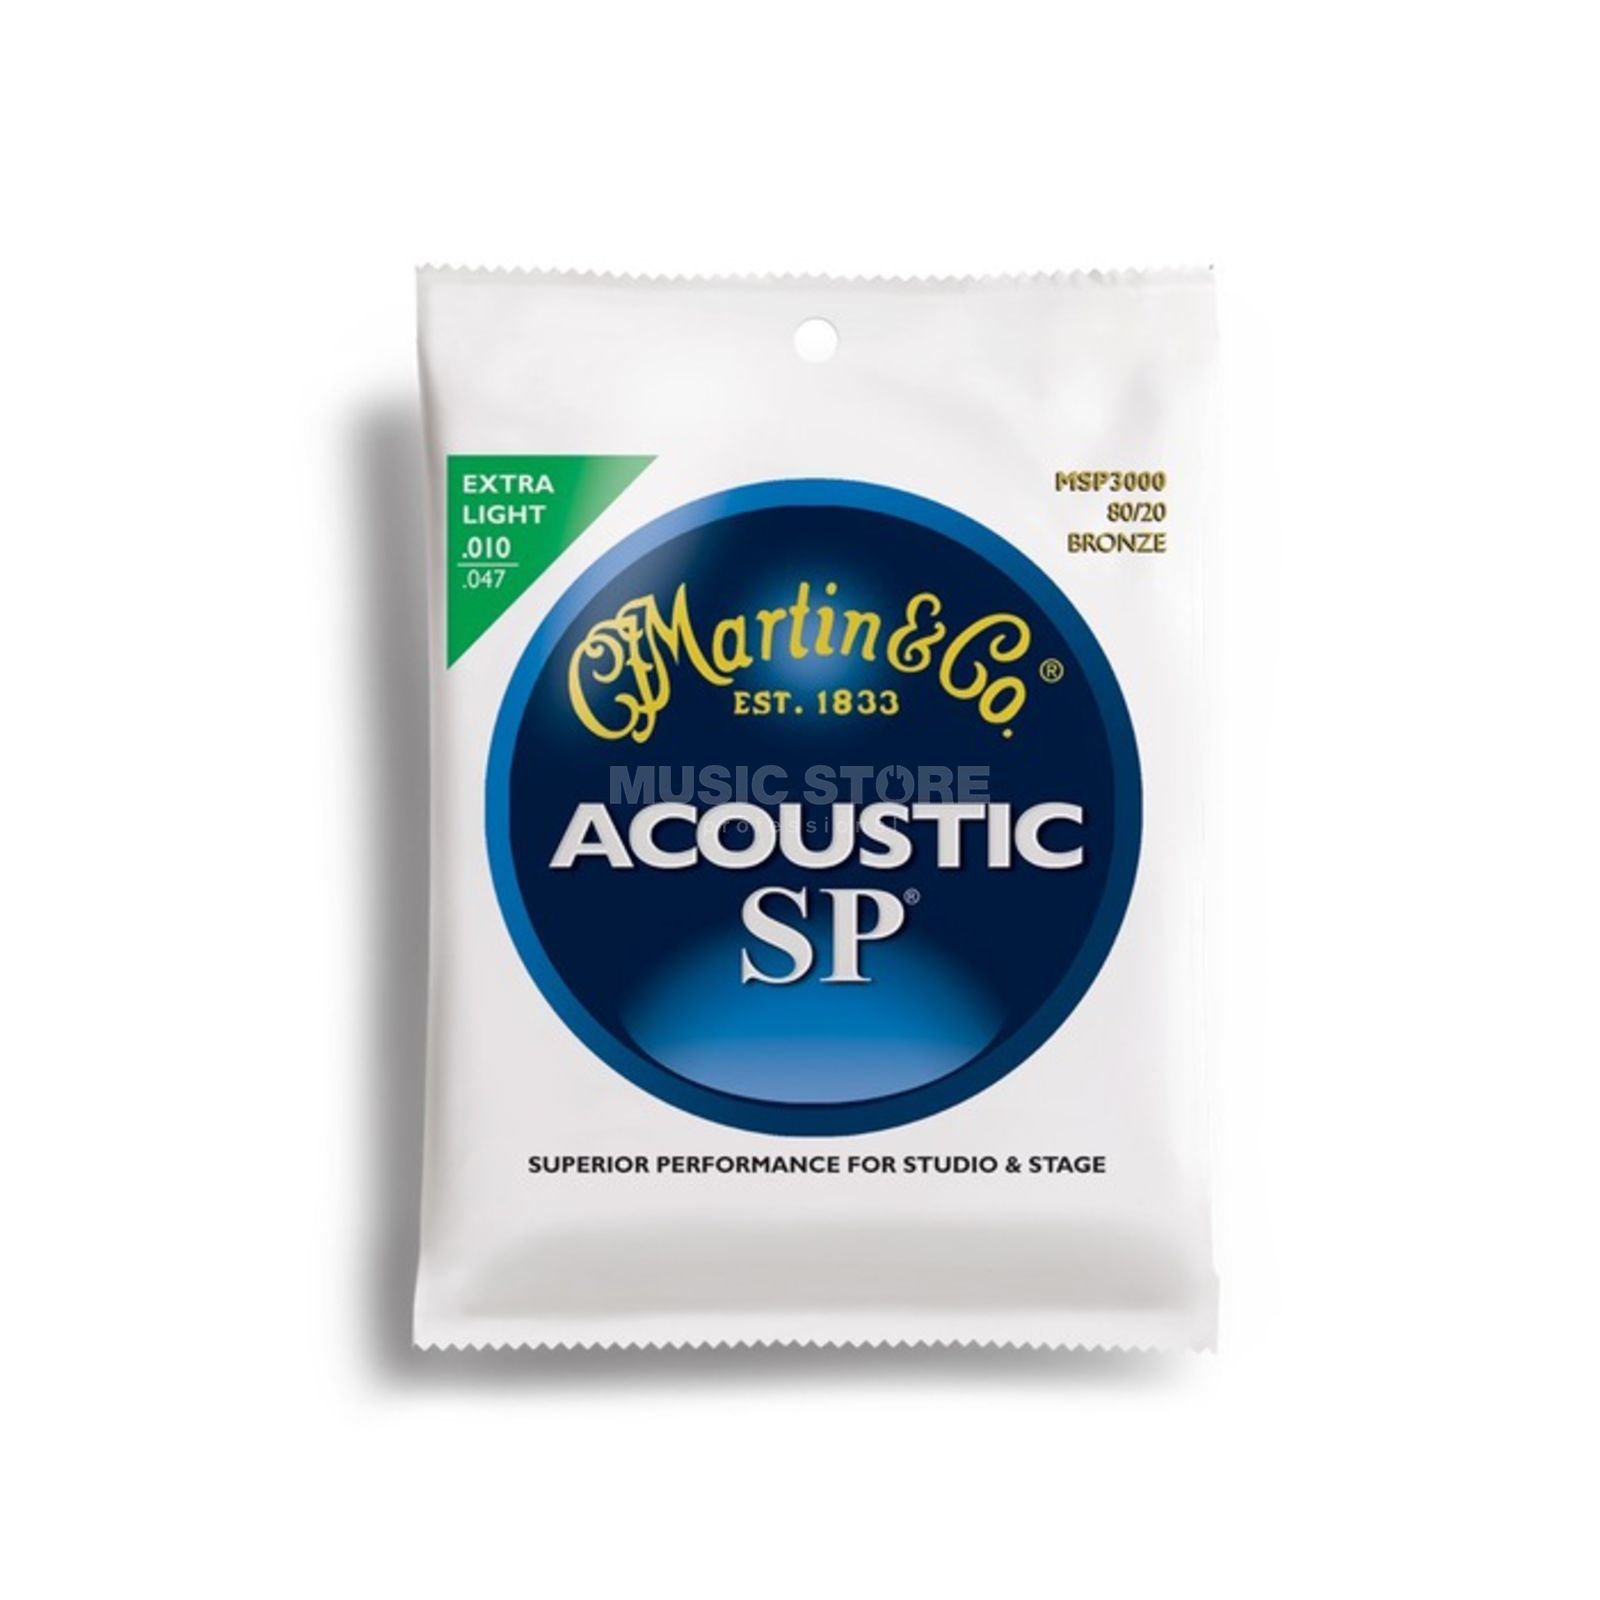 Martin Guitars Cordes guitare acoustique, 10-47,SP,MSP3000 Extra Light Image du produit